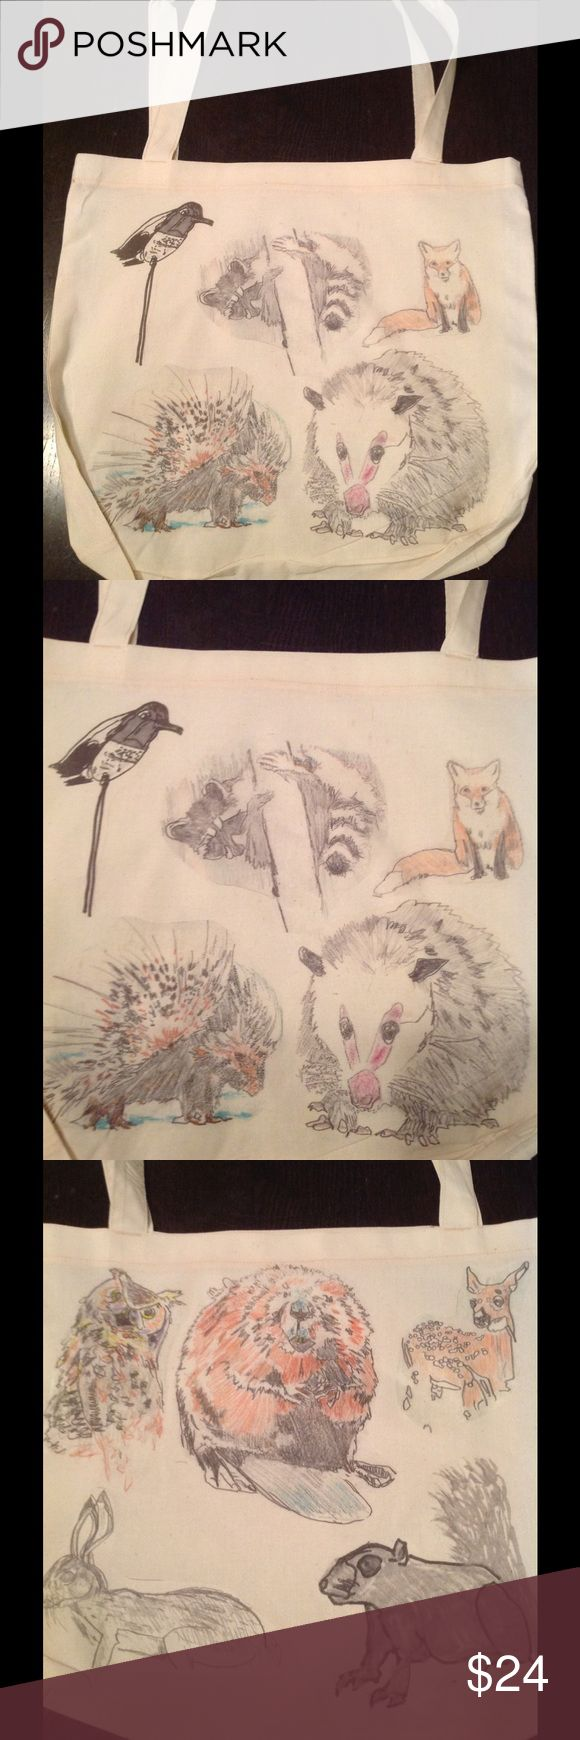 "New! Double sided woodland critters tote🐭🍂🌰🍄🐇 New no tag really cute with critters! Great to carry anywhere😝😝17.5x18"" cotton poly American Apparel Bags Totes"